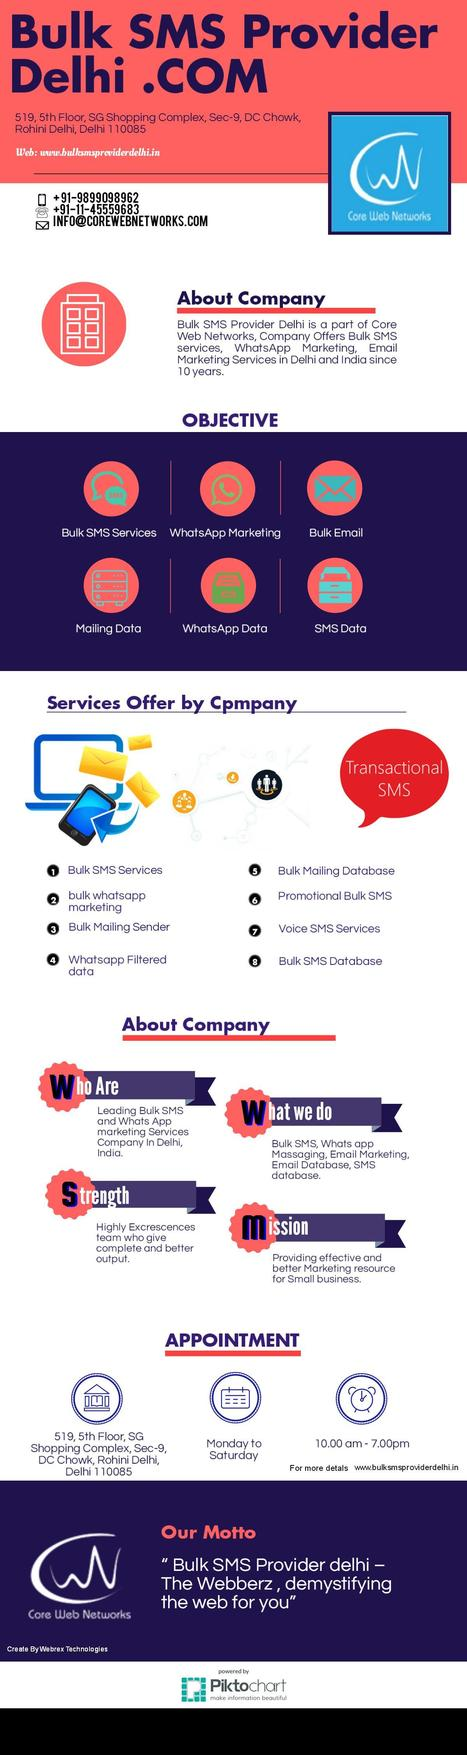 Bulk SMS Provider Delhi | Piktochart Infographic Editor | Press Release | Scoop.it